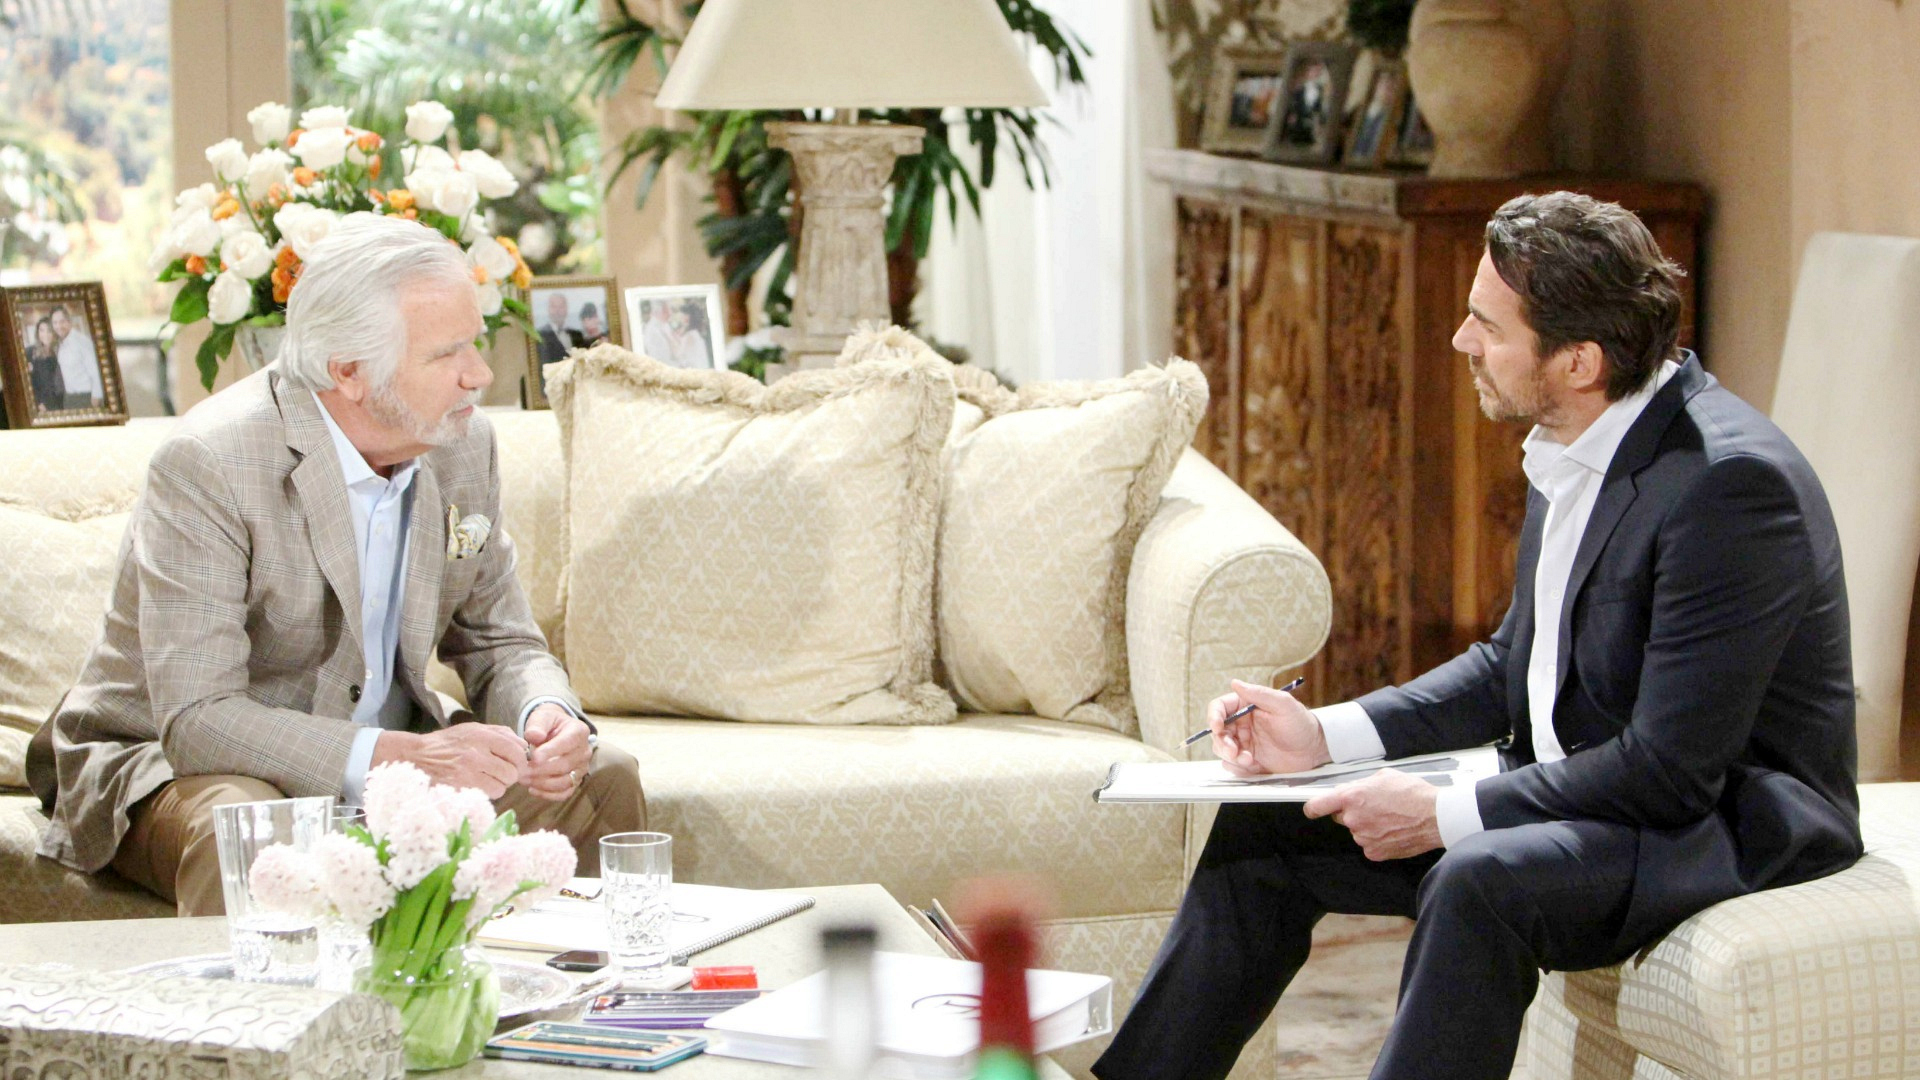 Ridge feels pangs of guilt as Eric advises him on how to win back Brooke's heart.